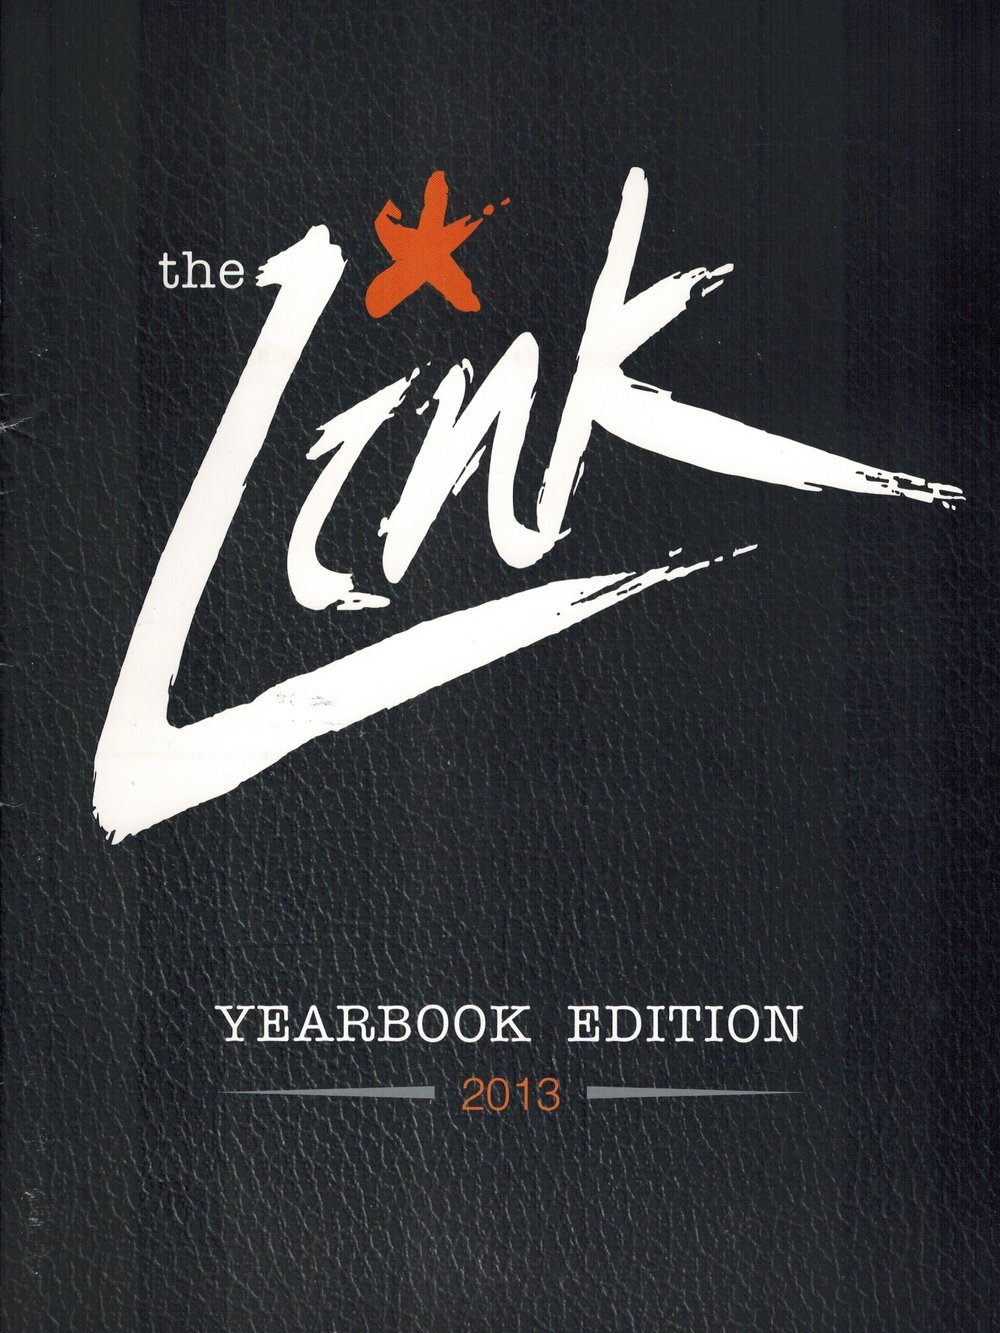 The Link, 2013 Yearbook